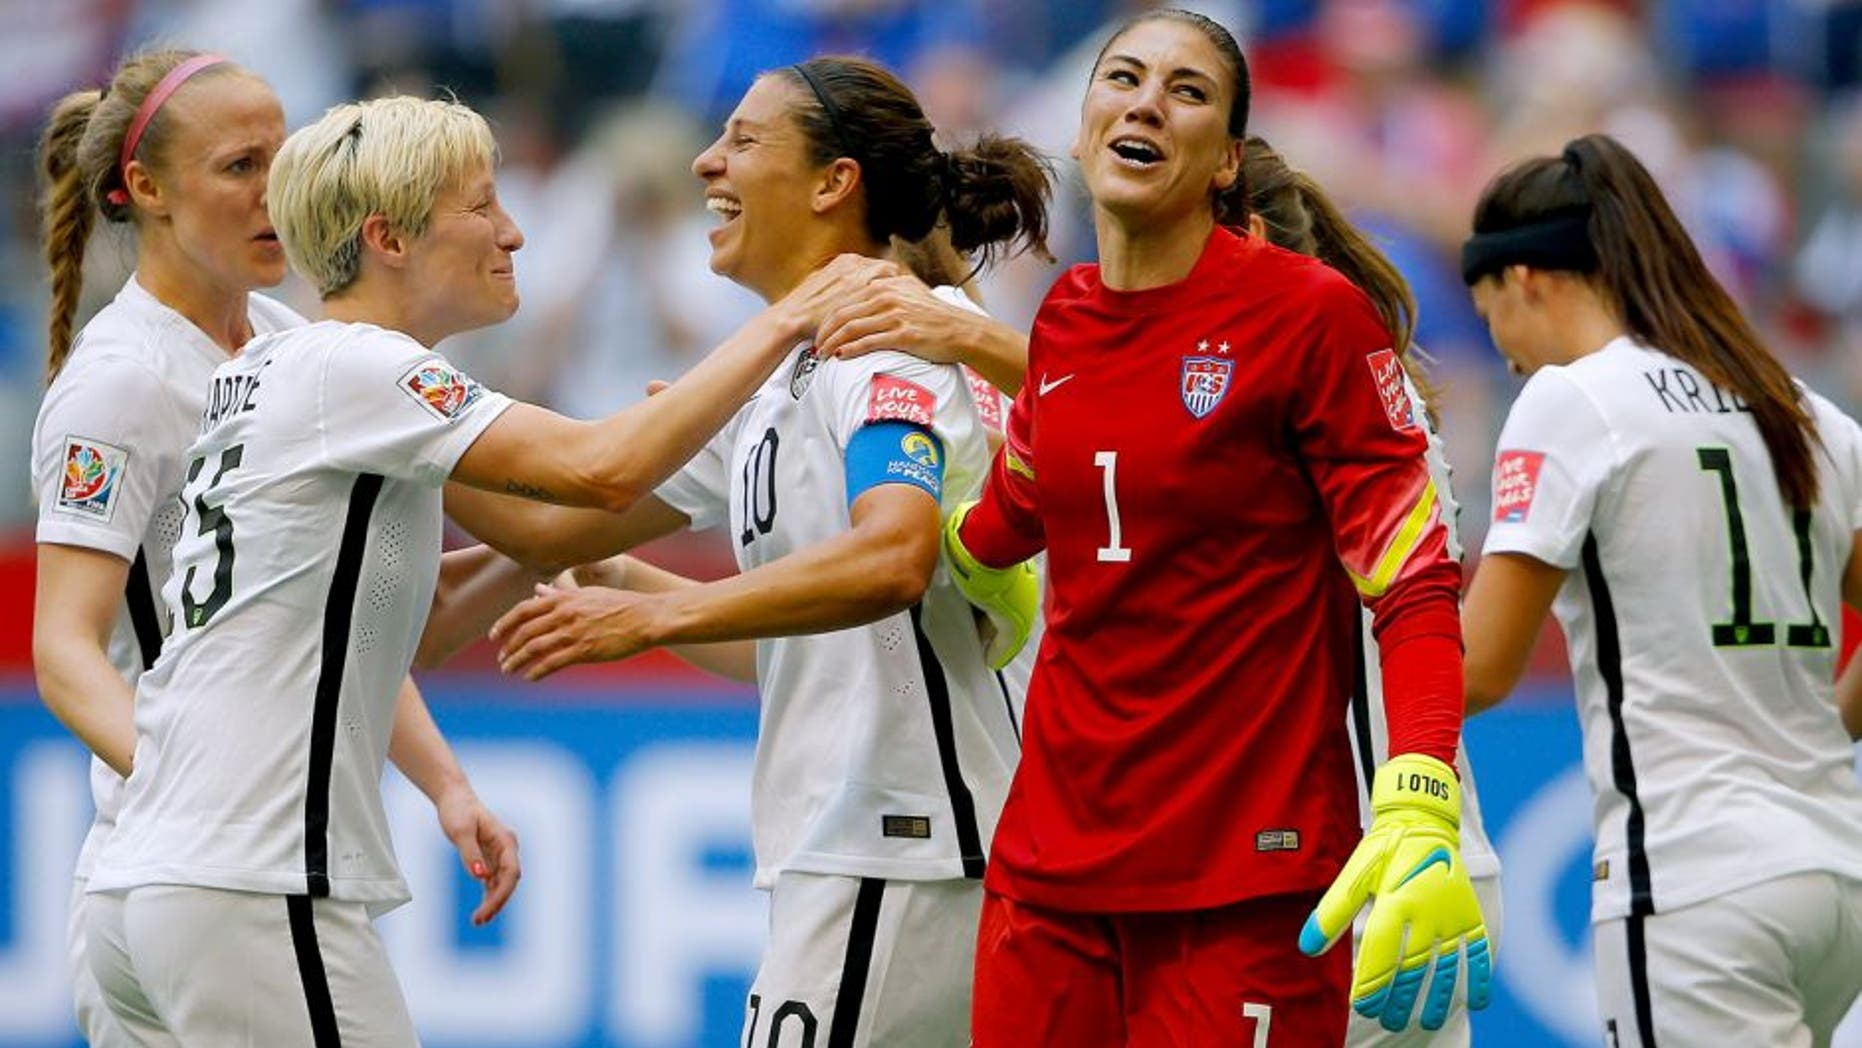 VANCOUVER, BC - JULY 05: Carli Lloyd #10 of the United States of America celebrates after her third goal against Japan with goalkeeper Hope Solo #1 and Megan Rapinoe #15 in the FIFA Women's World Cup Canada 2015 Final at BC Place Stadium on July 5, 2015 in Vancouver, Canada. (Photo by Kevin C. Cox/Getty Images)